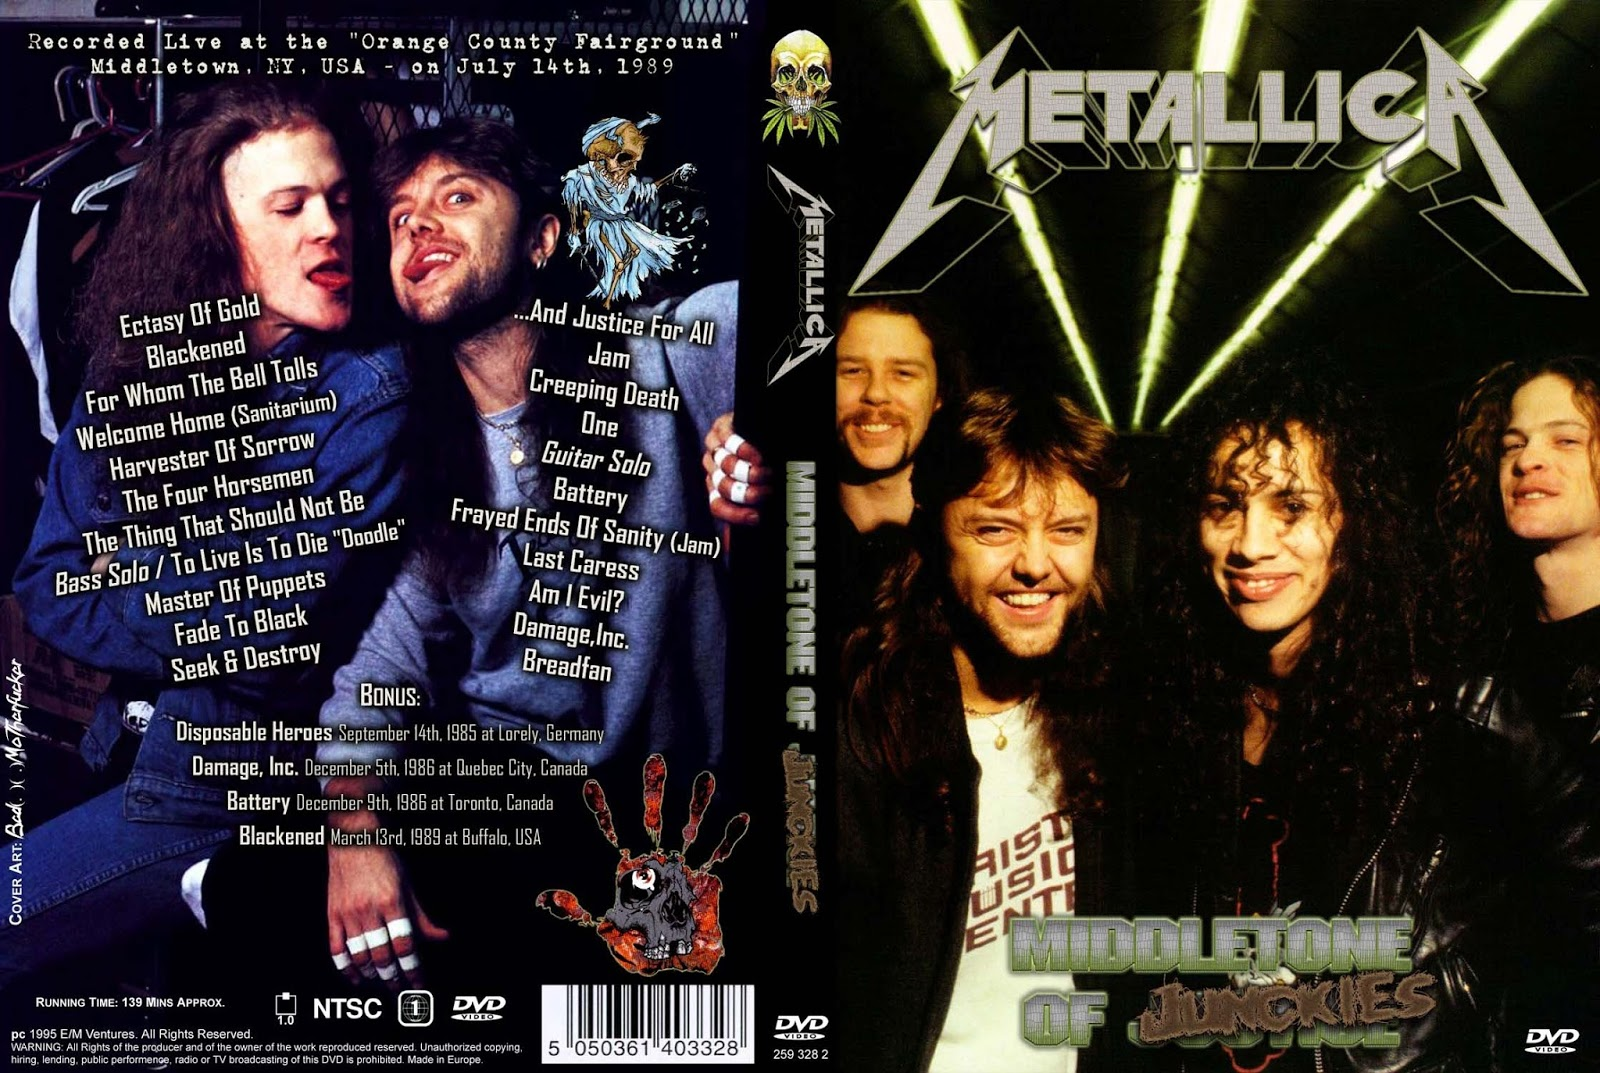 Group of Metallica Live 111